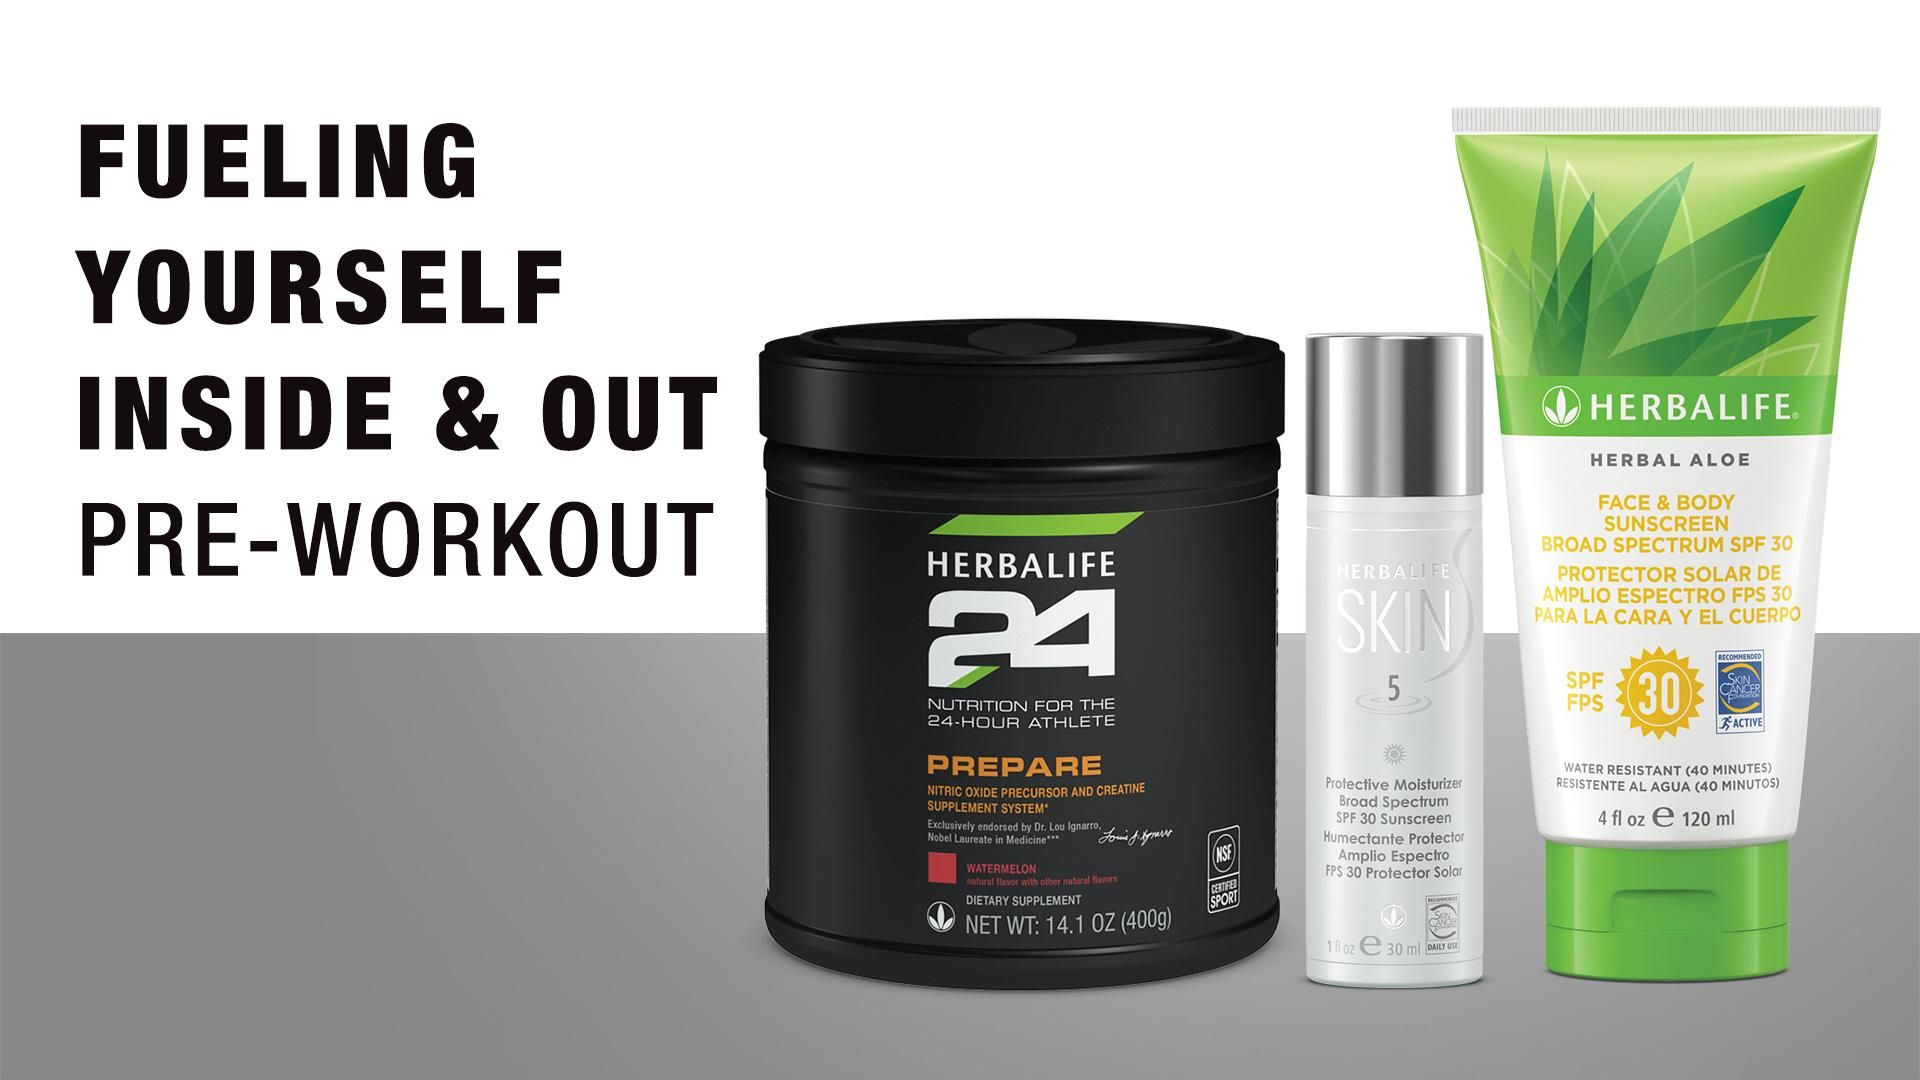 Fueling Yourself Inside & Out: Pre-workout